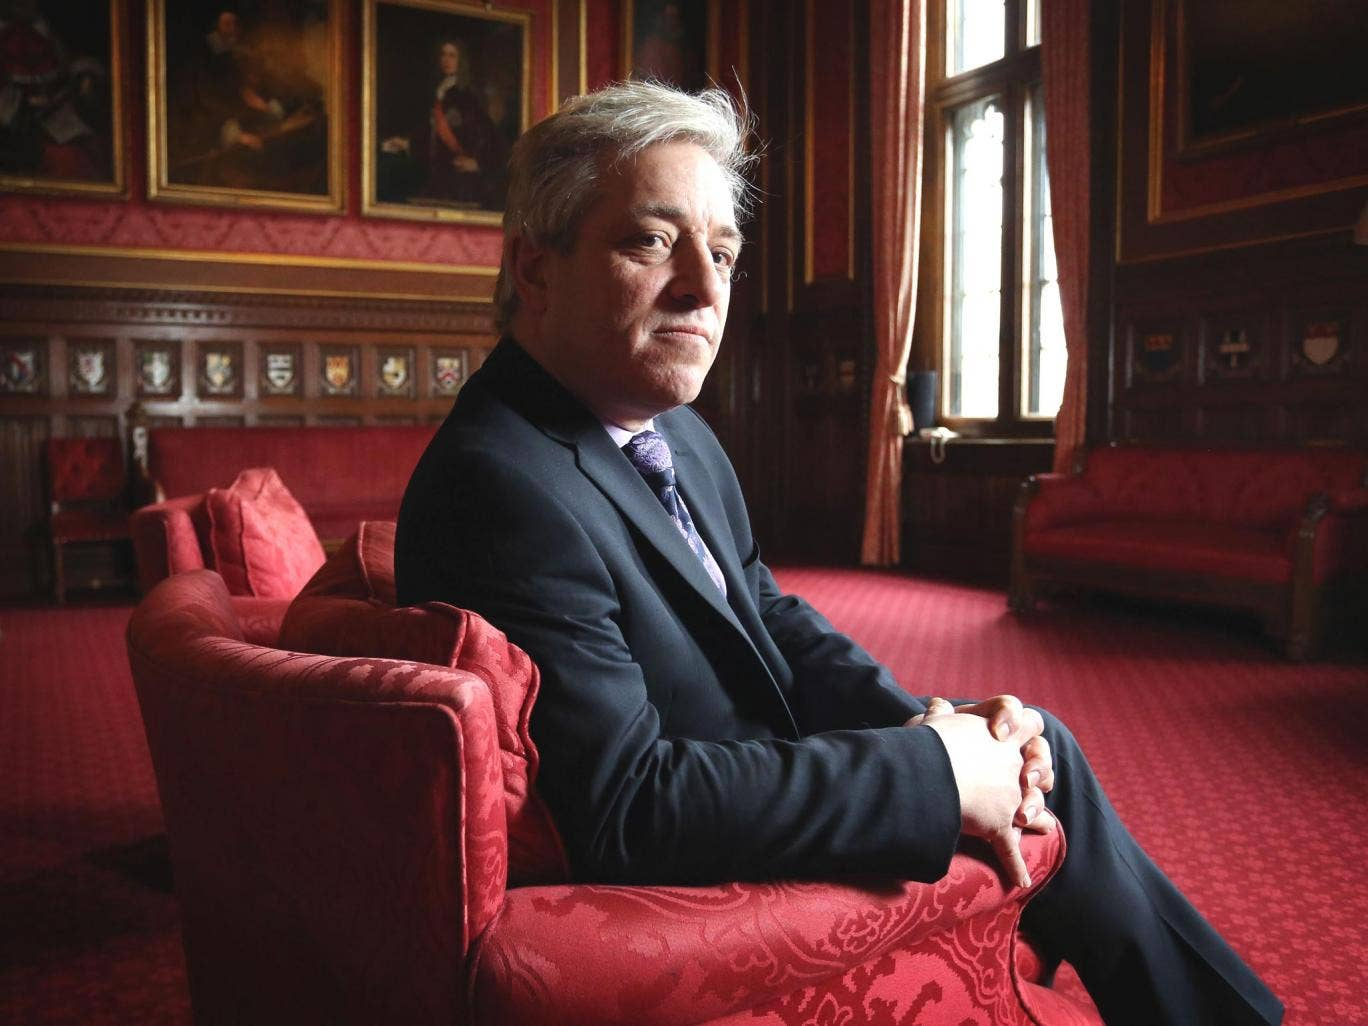 Commons Speaker John Bercow is calling for reform to PMQs